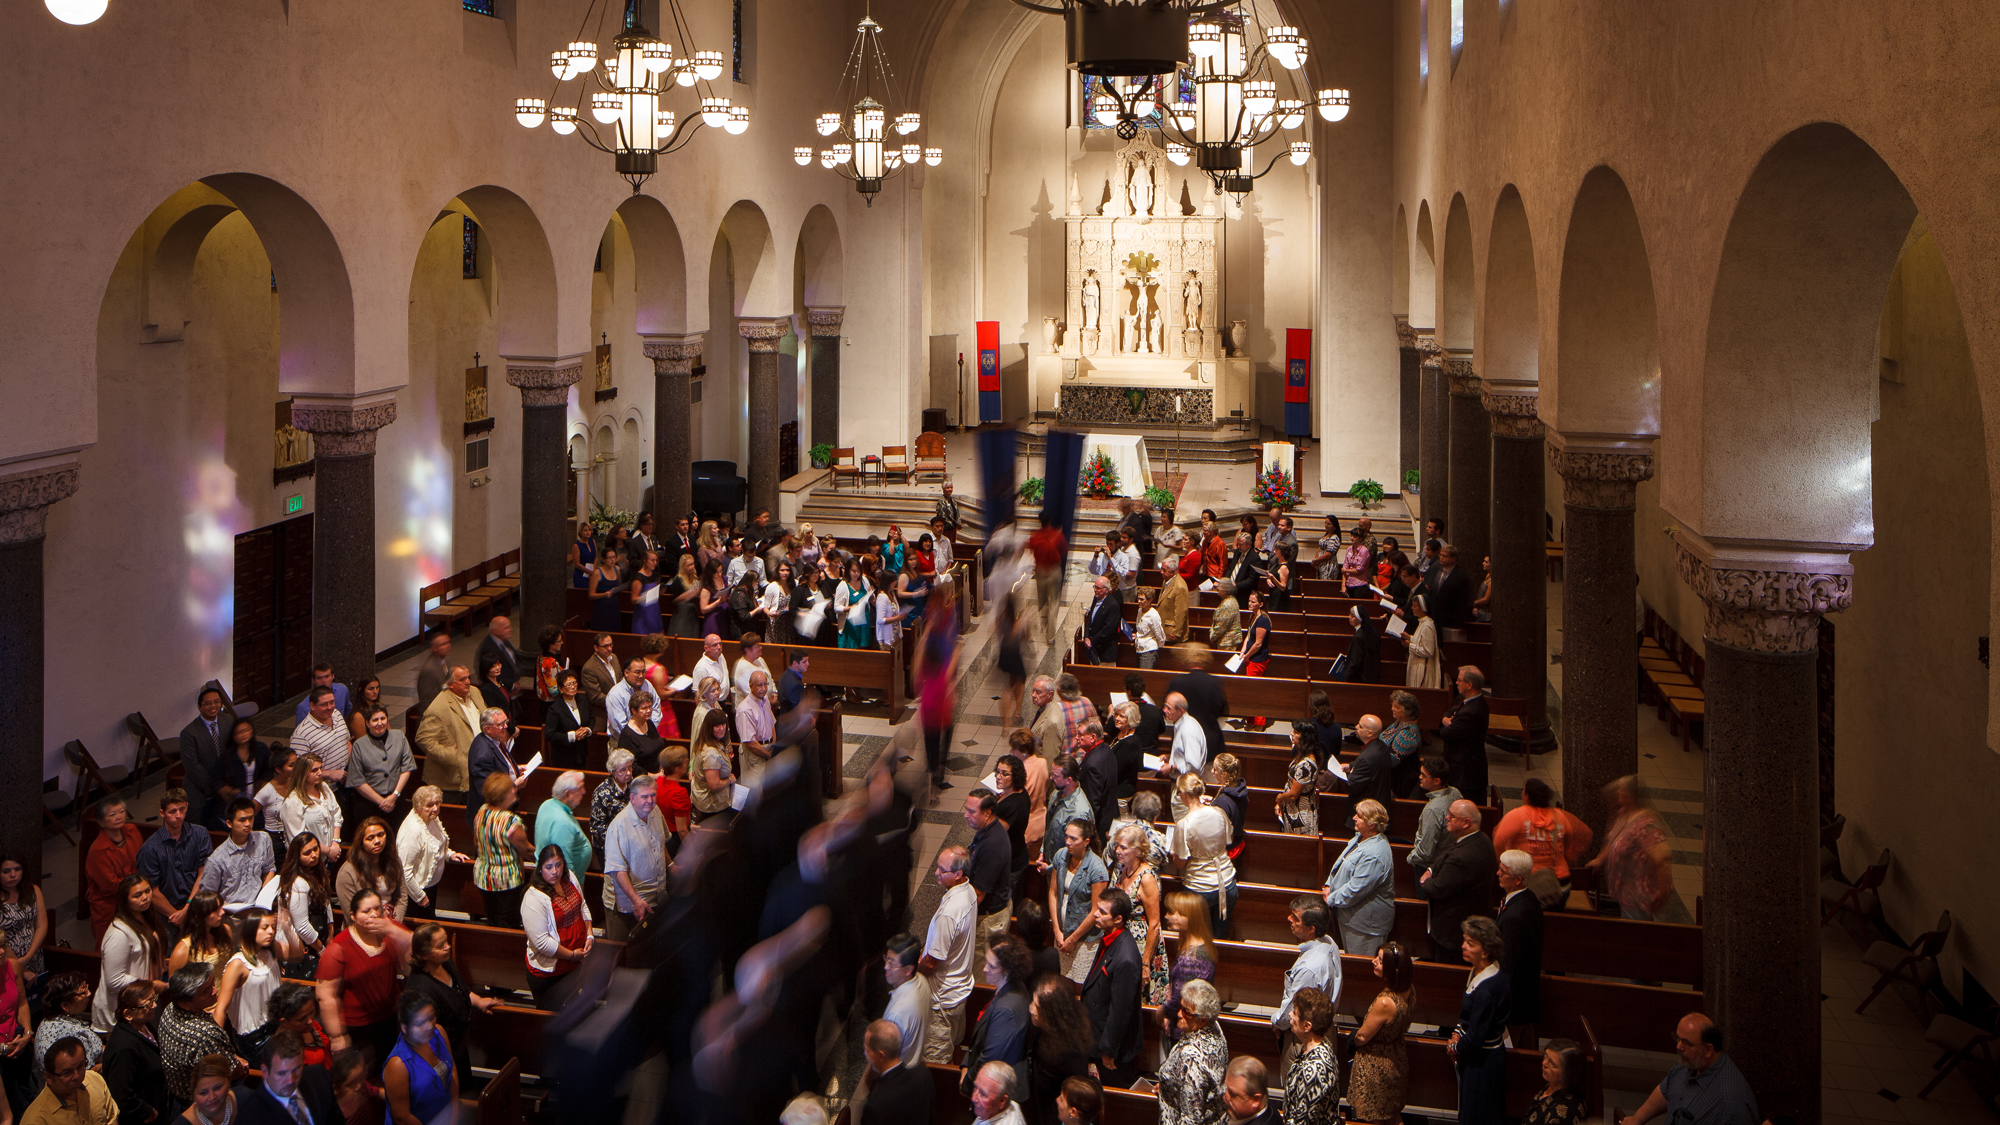 A procession moving down the aisle of the chapel with people in the pews standing up and watching